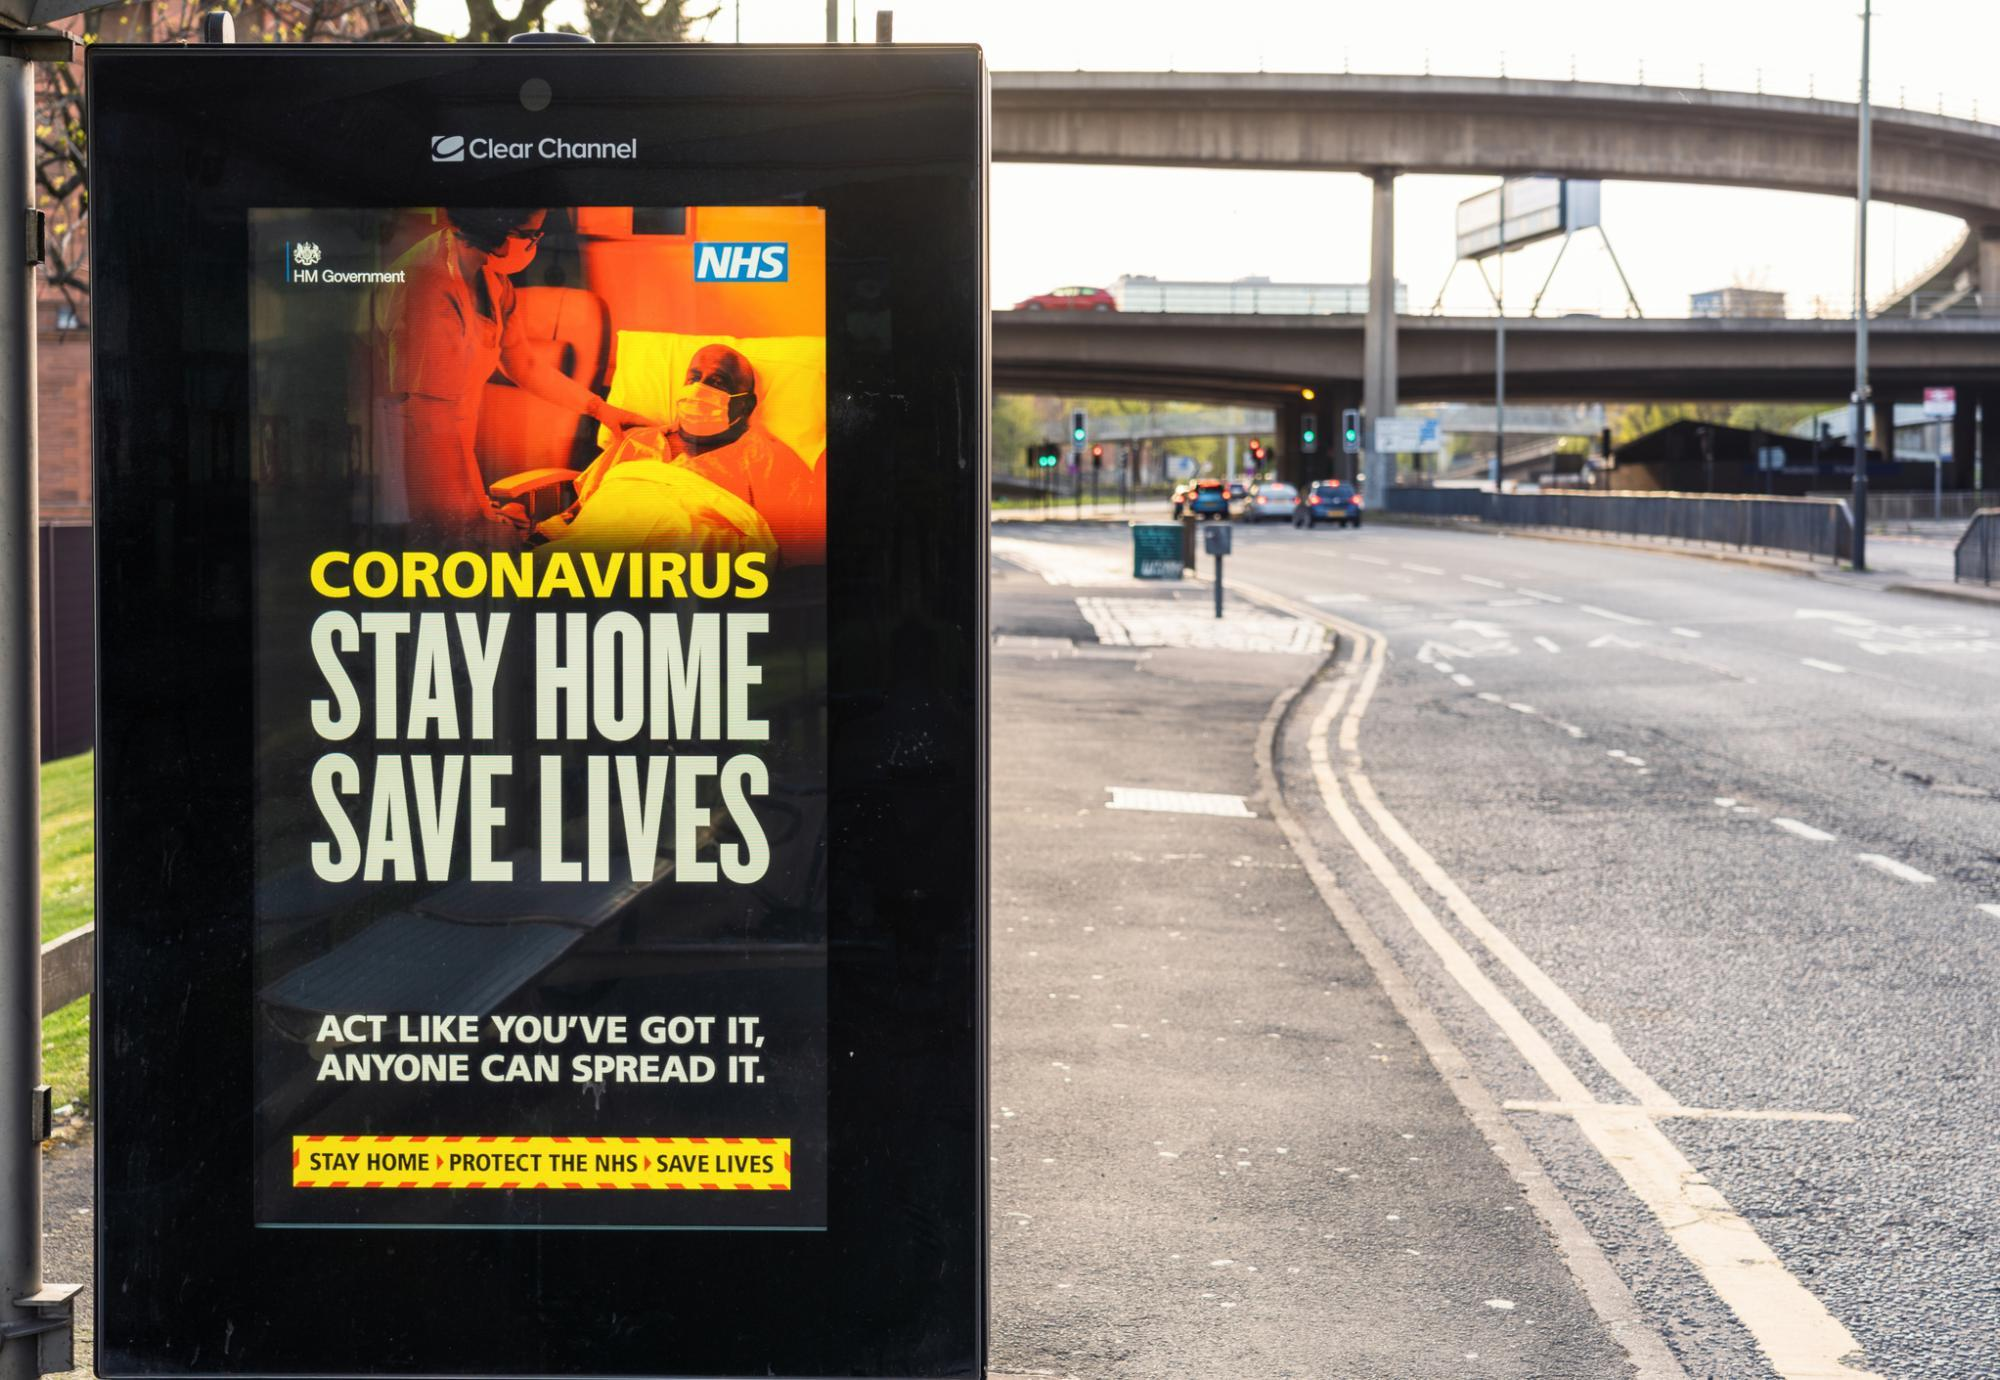 Stay Home Save Lives bus stop advertisement